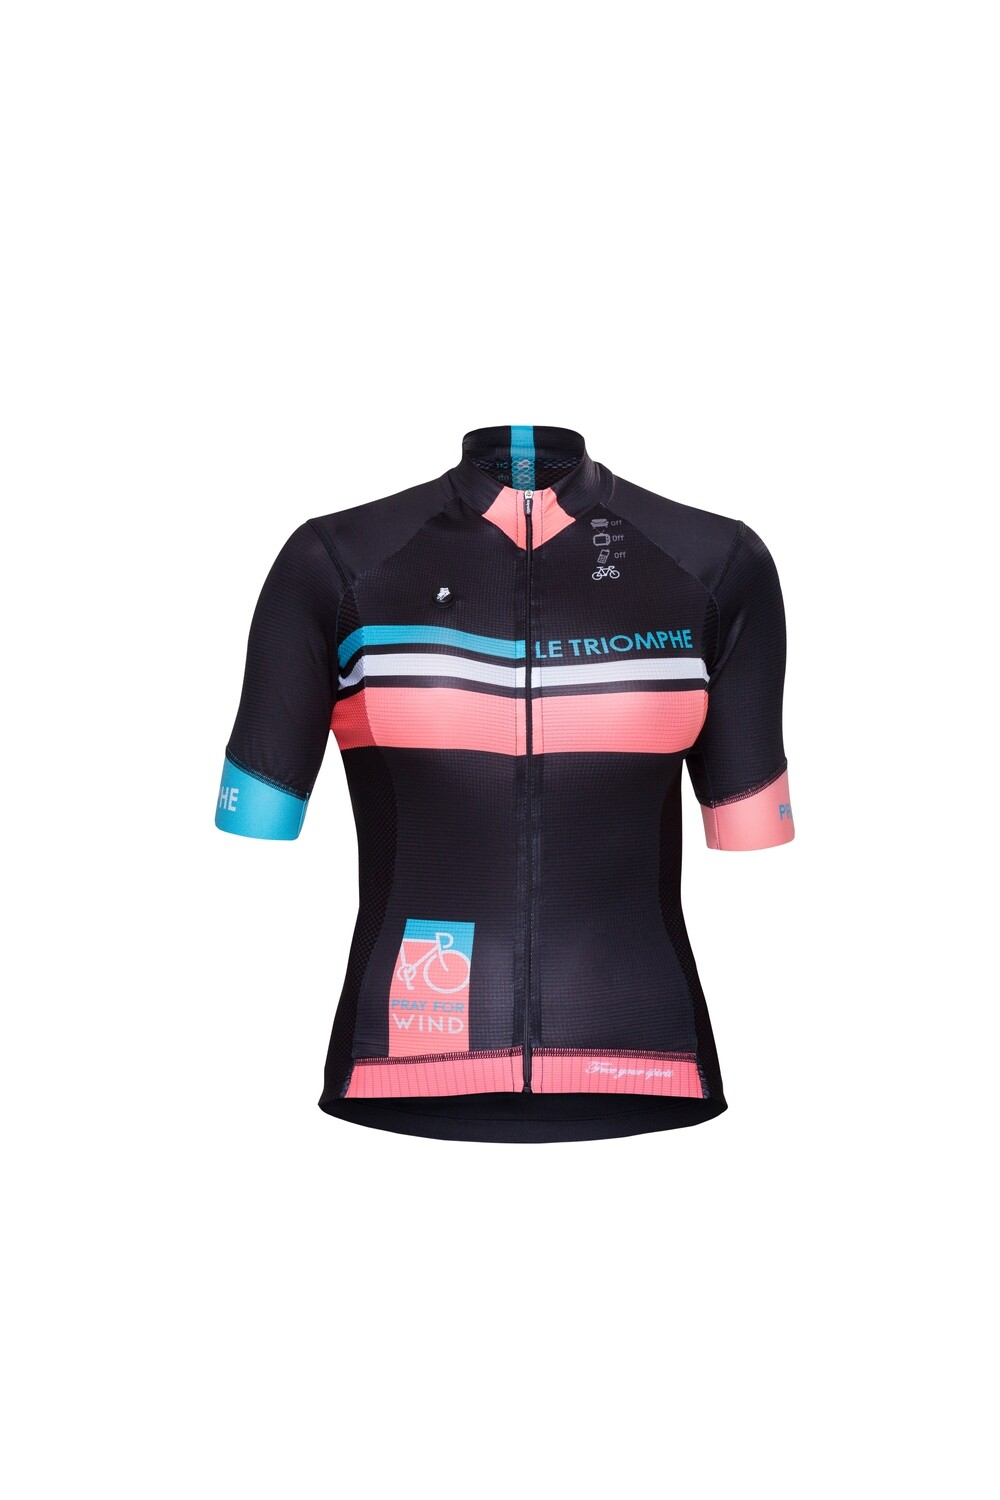 Short Sleeve Jersey - Le Triomphe Black